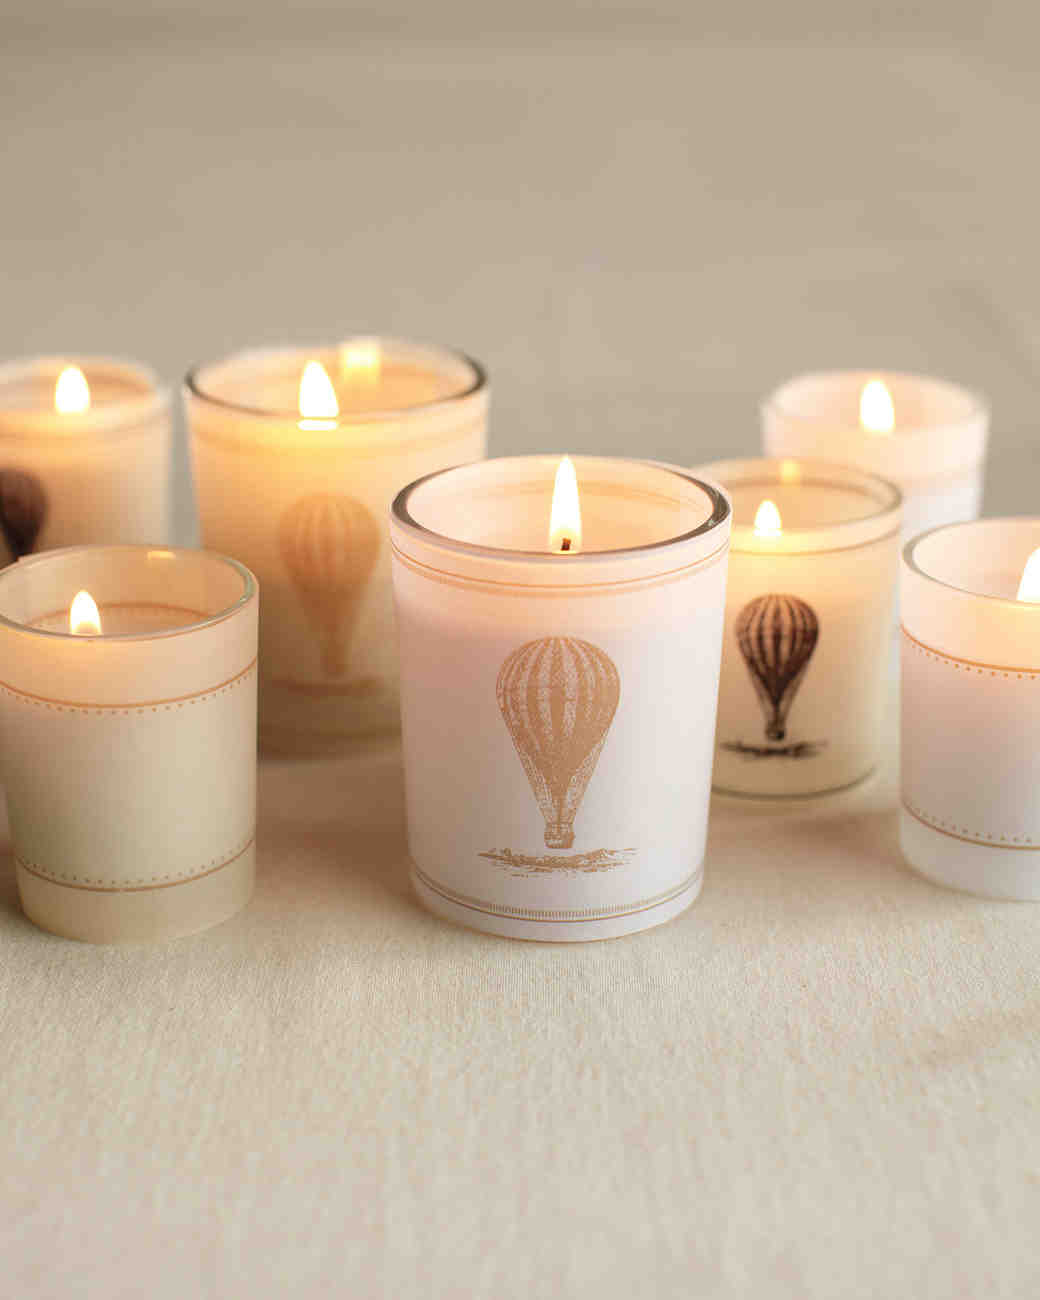 clip-art-candles-mwd107615.jpg